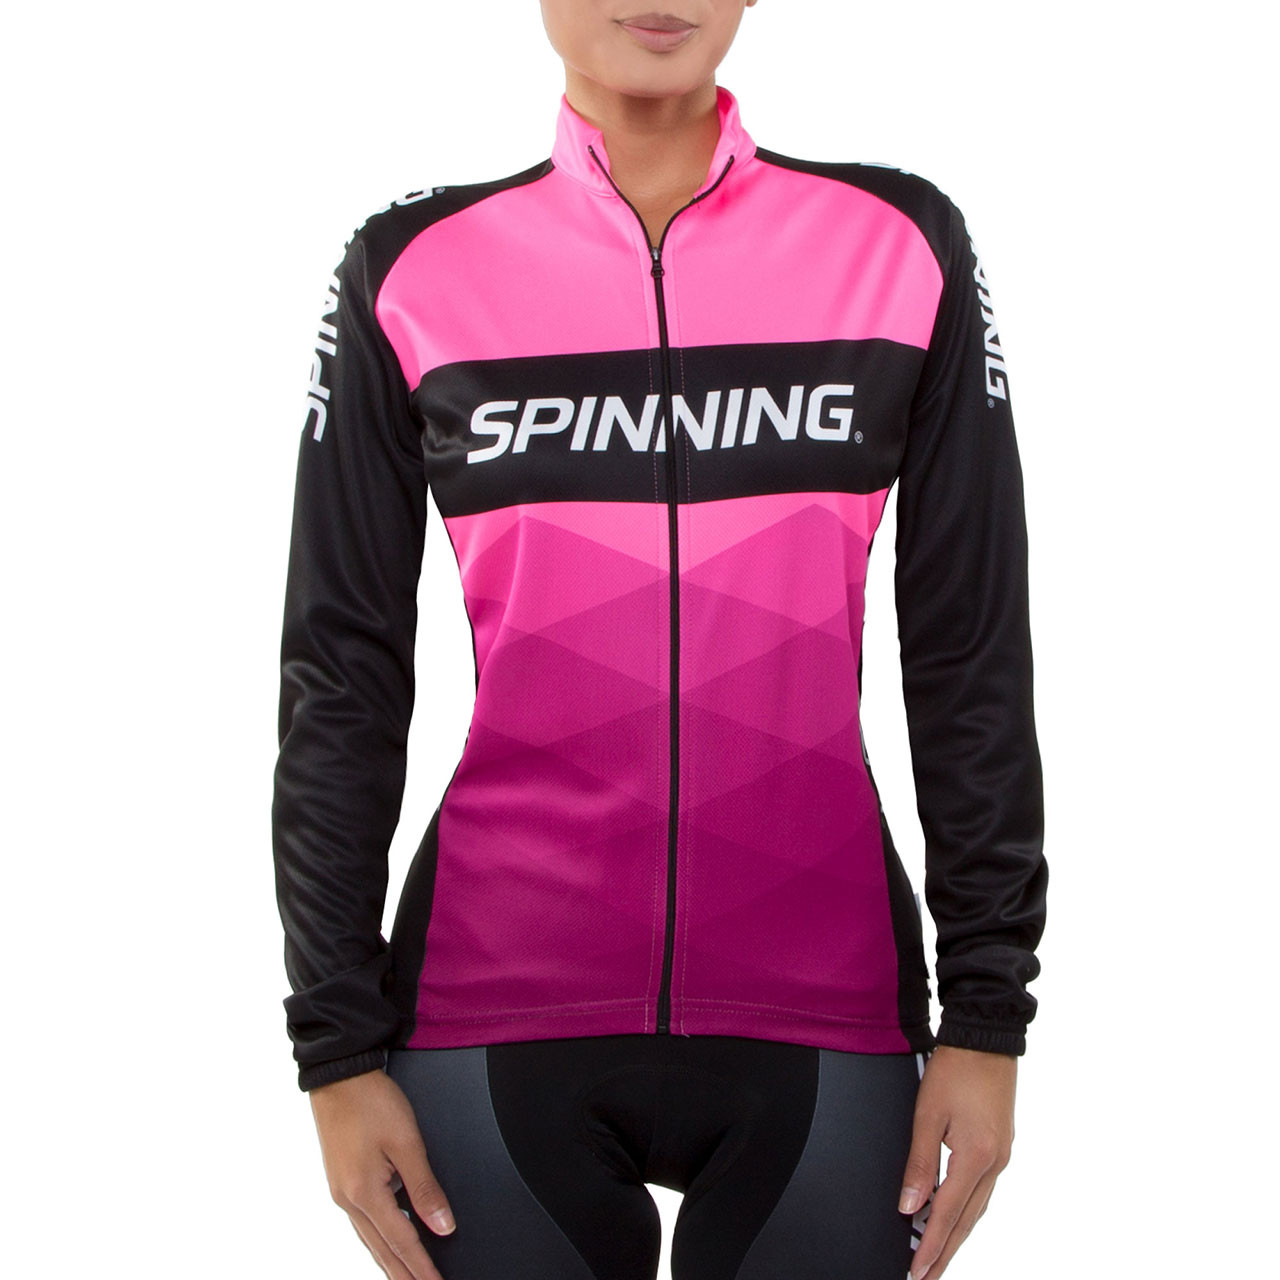 1a0232022 Spinning® Orion Women s Cycling Jacket Pink - Spinning®